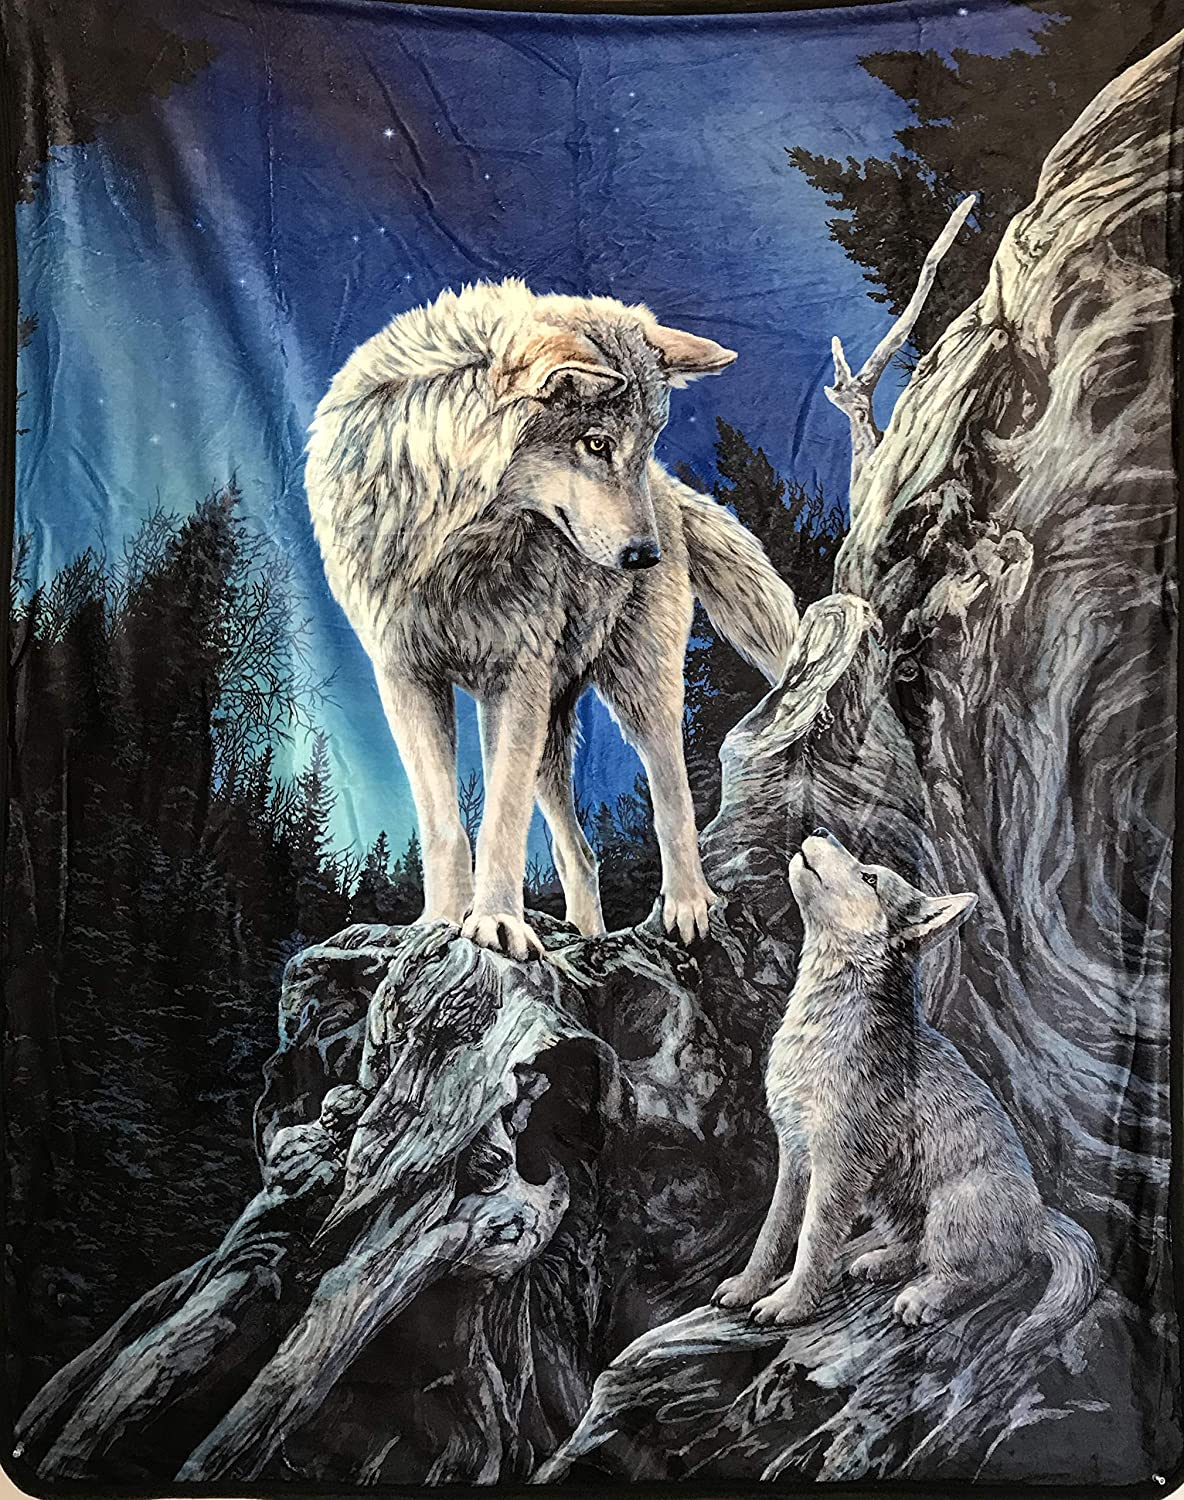 Lisa Parker Wolf Guidance Silk Touch Throw with Sherpa Lining, Measures 50 by 60 inches